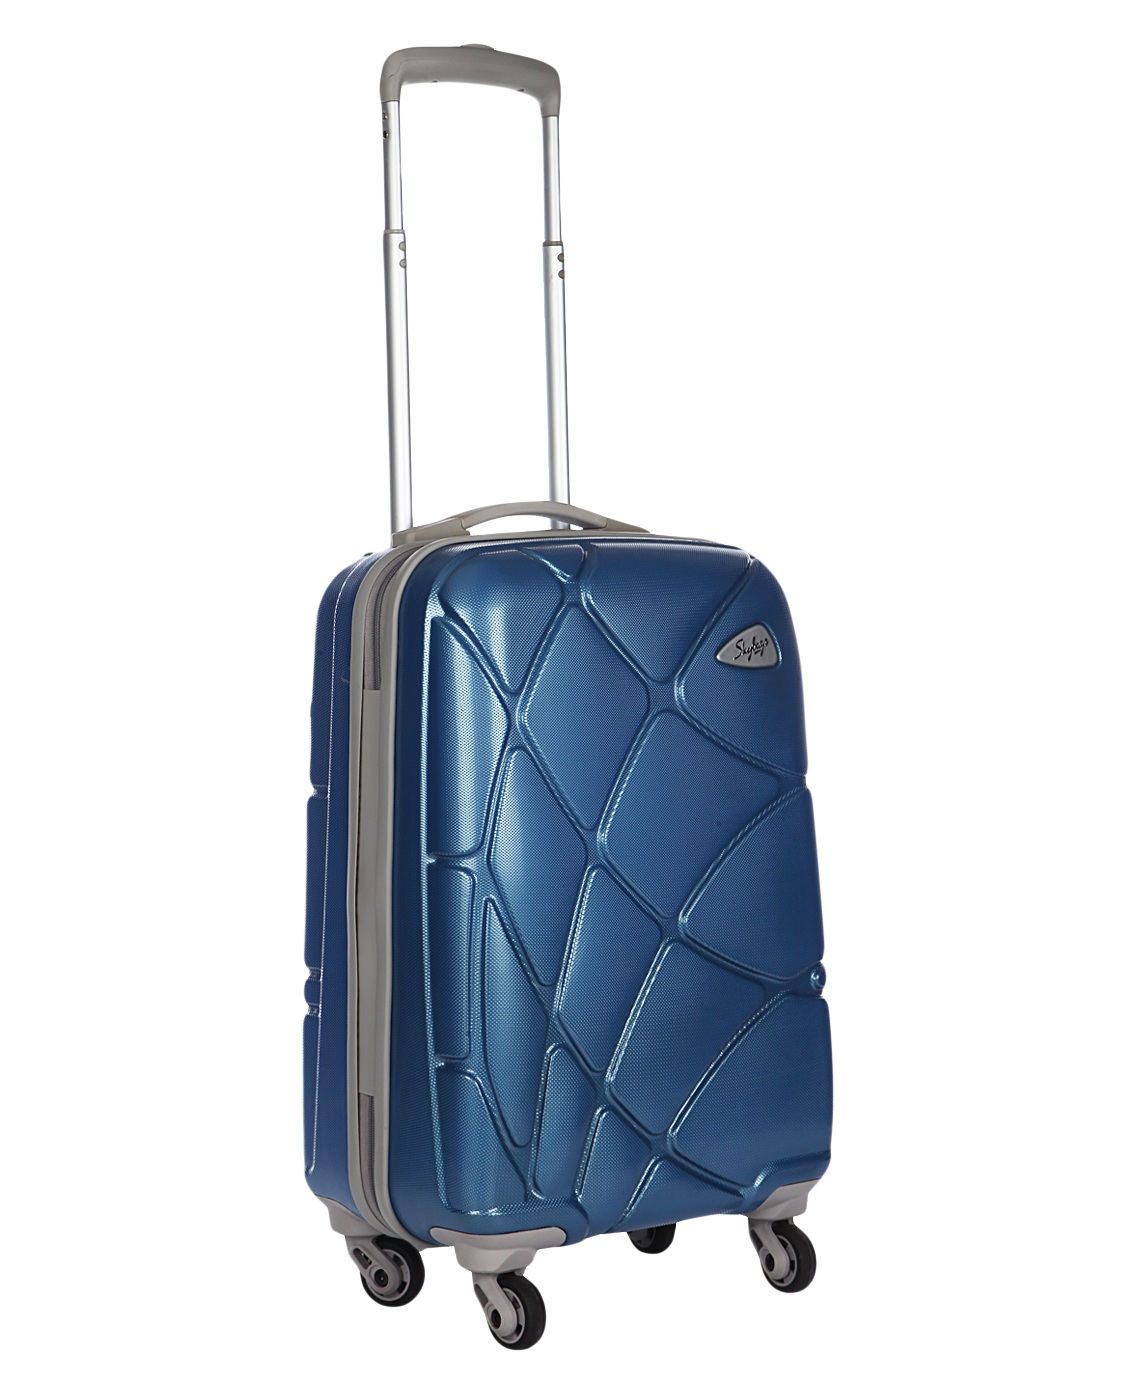 Strolley png image purepng. Luggage clipart green suitcase